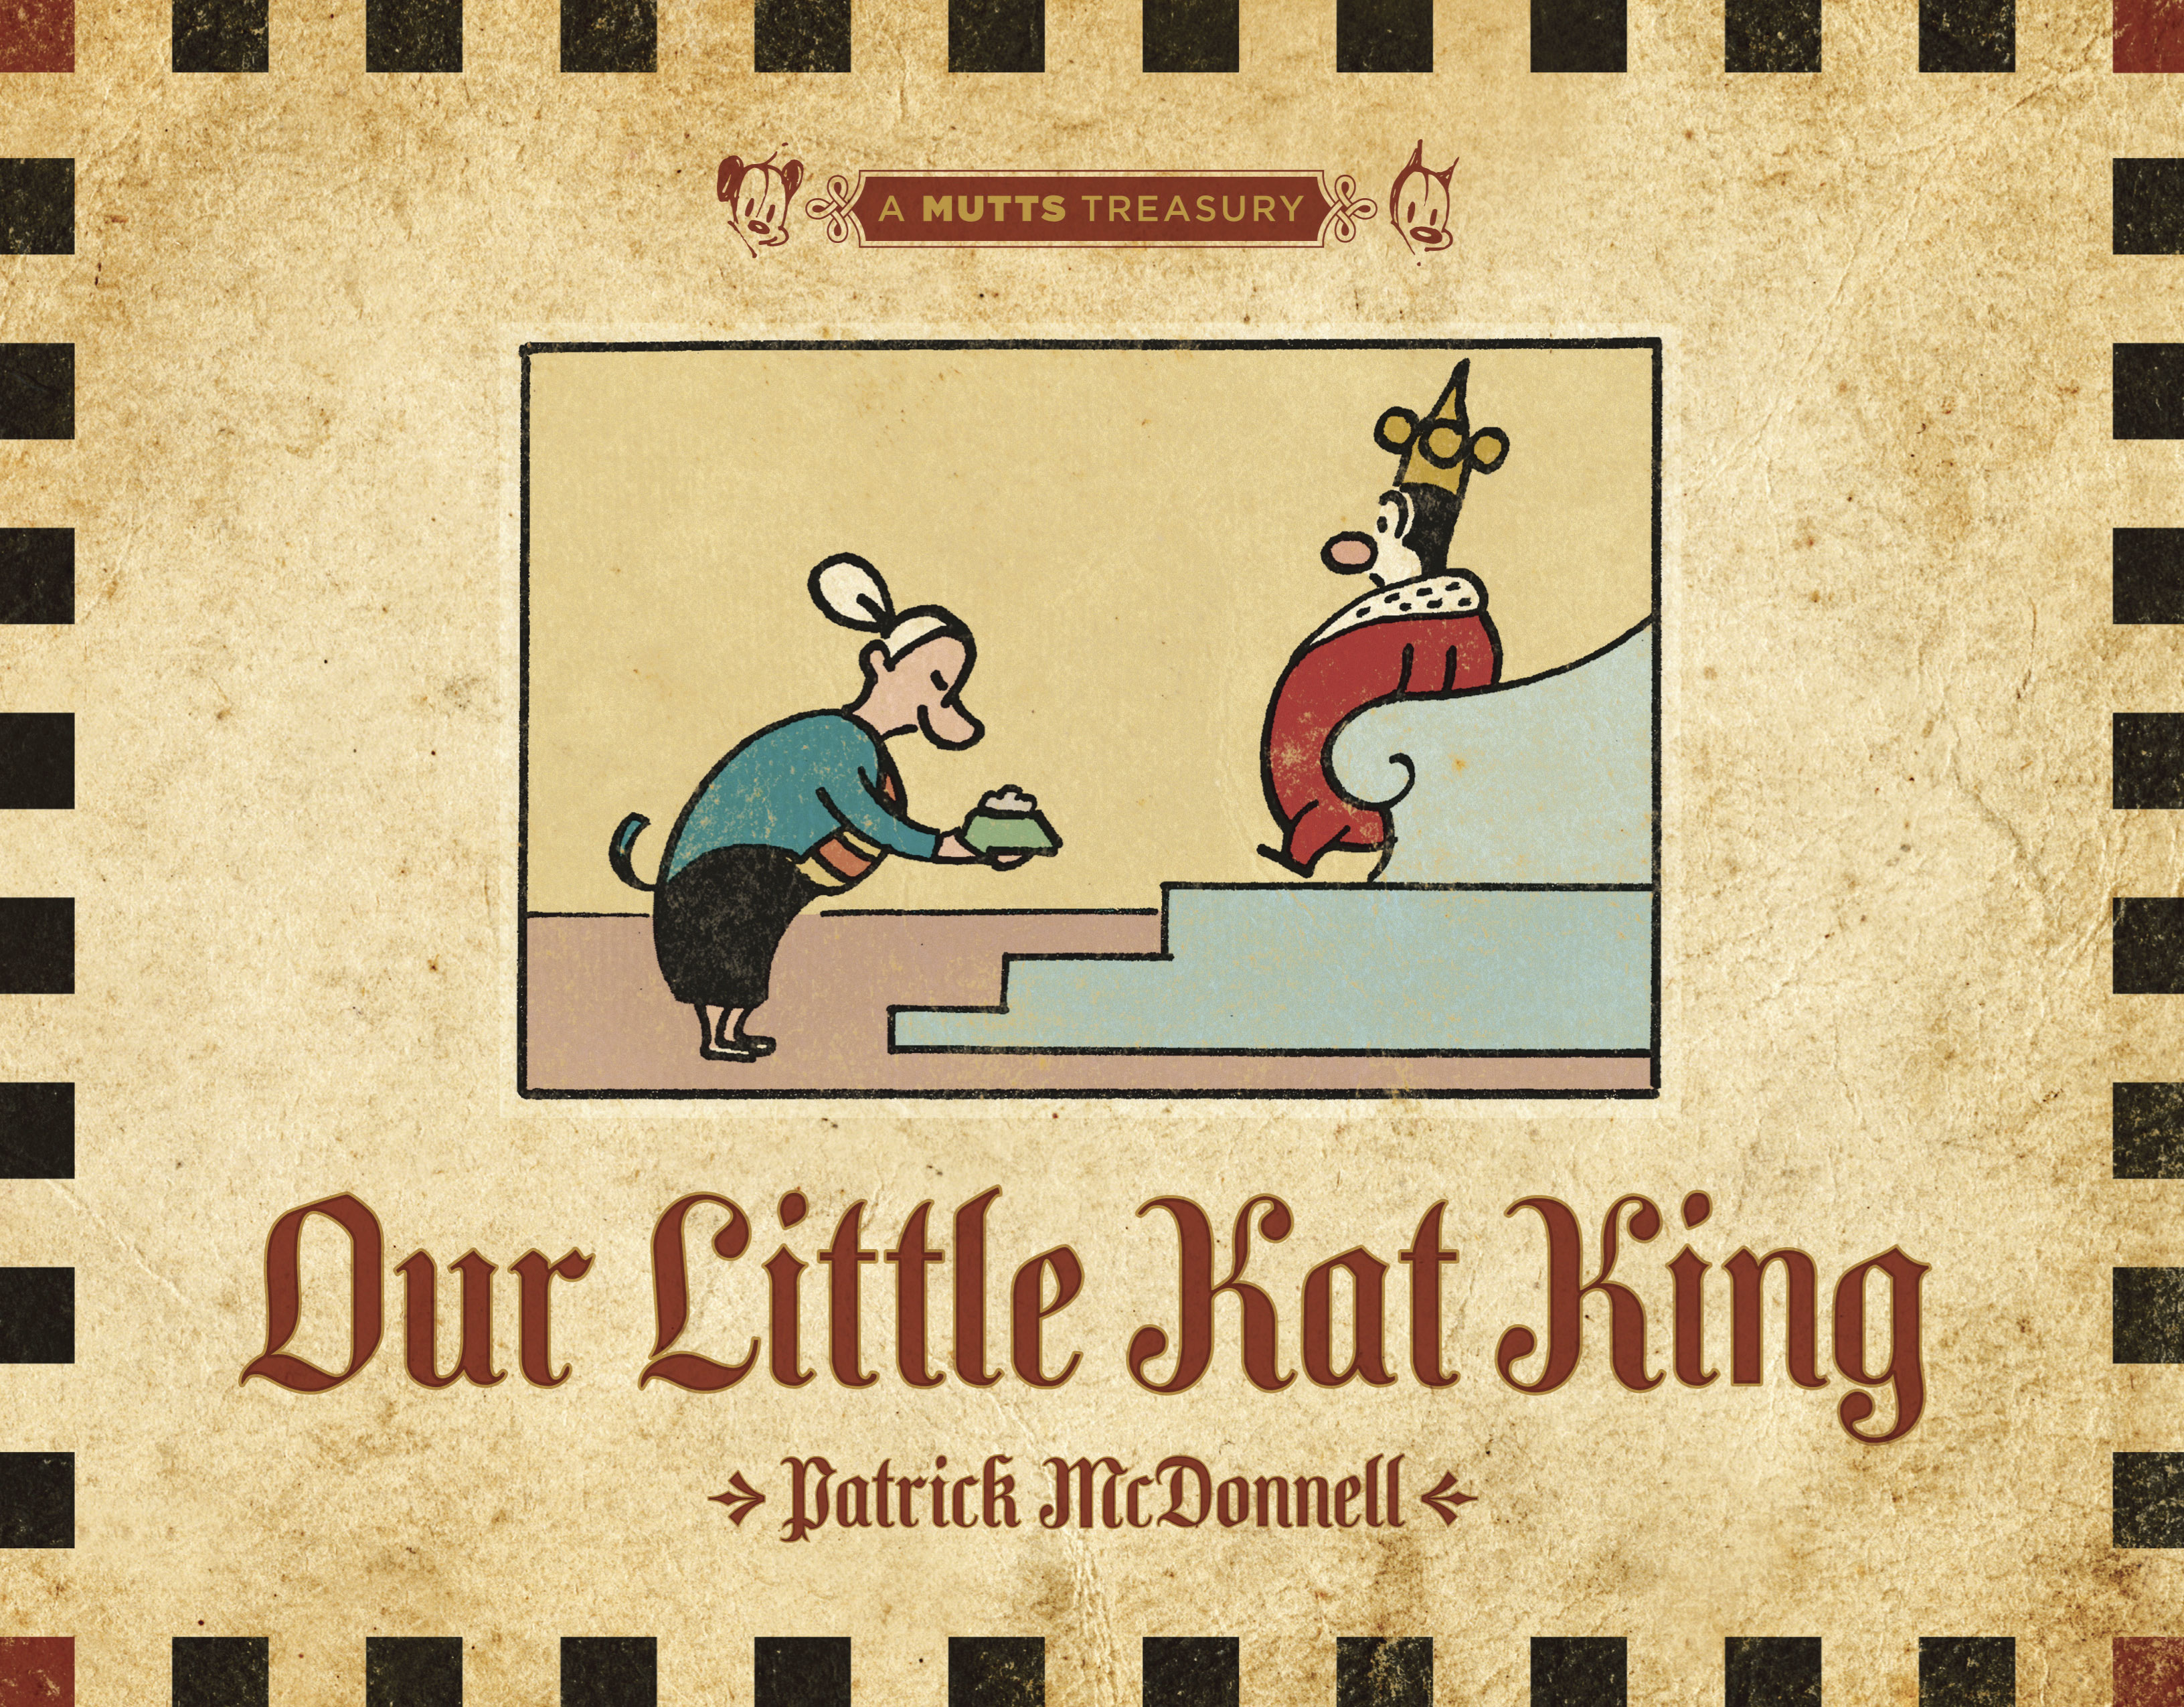 Our Little Kat King: A Mutts Treasury Cover Image